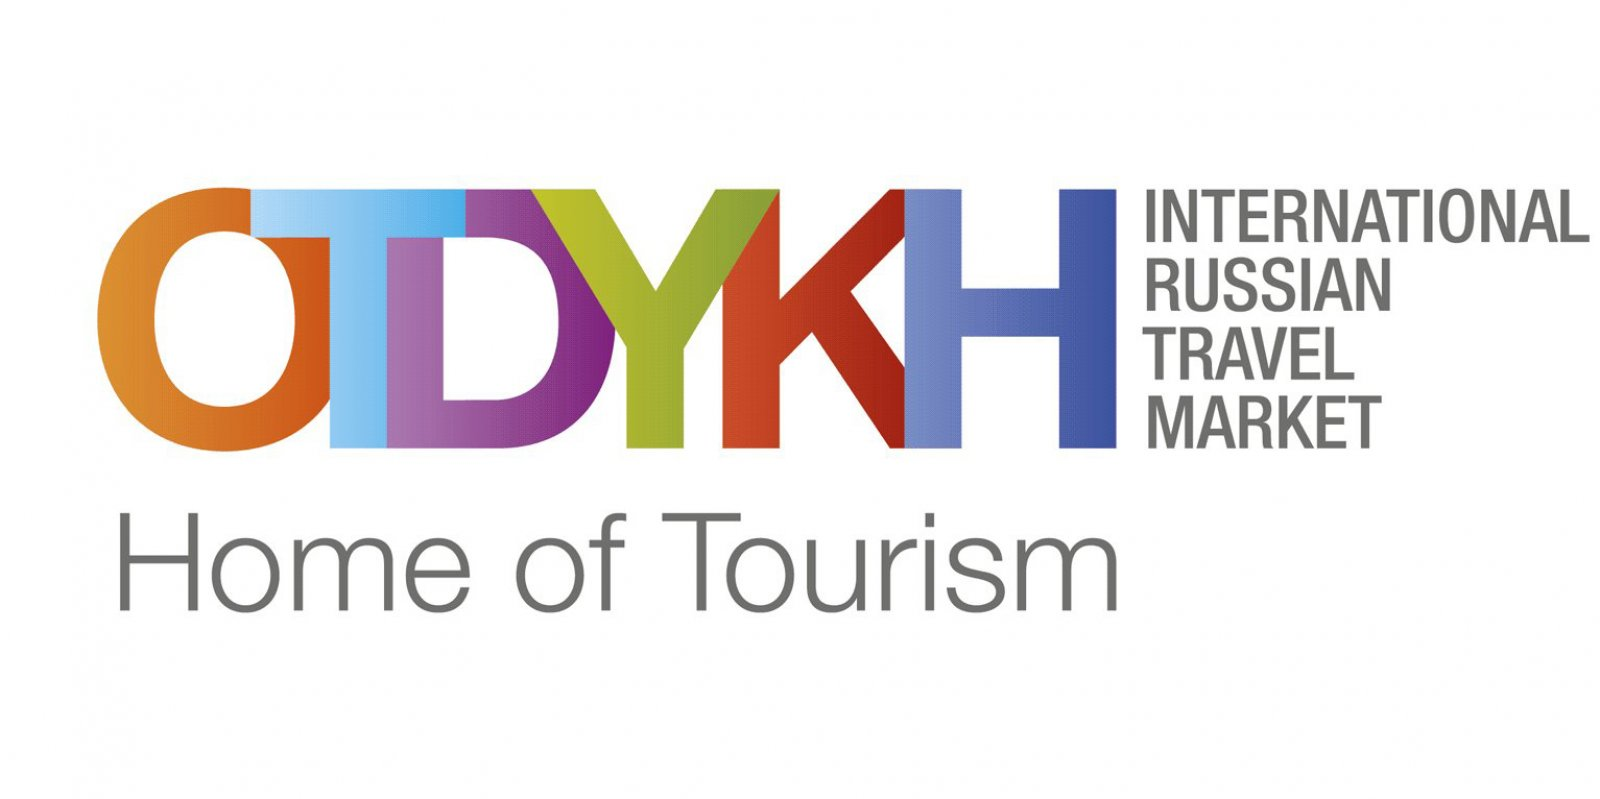 0TDYKH - International Russian Travel Market 2018